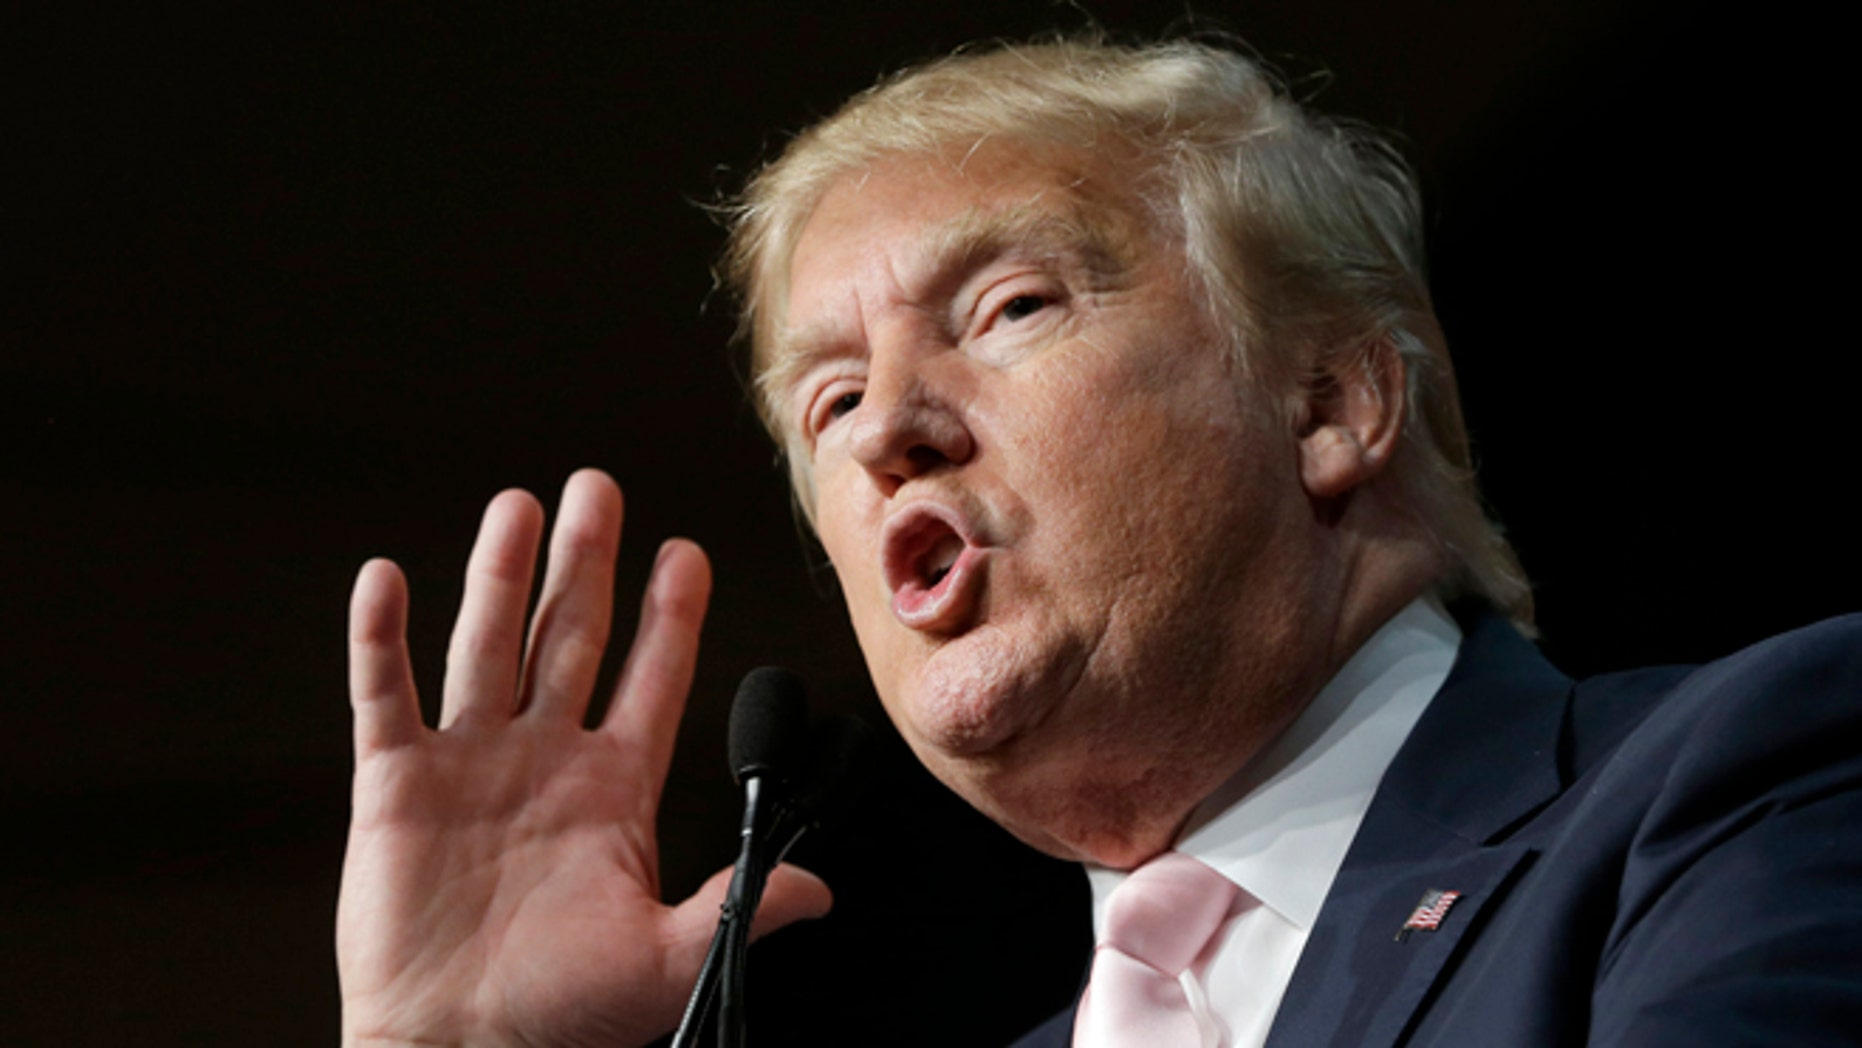 Republican presidential candidate Donald Trump gestures as he addresses supporters during a campaign stop at the Trump National Doral Miami resort, Friday, Oct. 23, 2015 in Doral, Fla. (AP Photo/Alan Diaz)